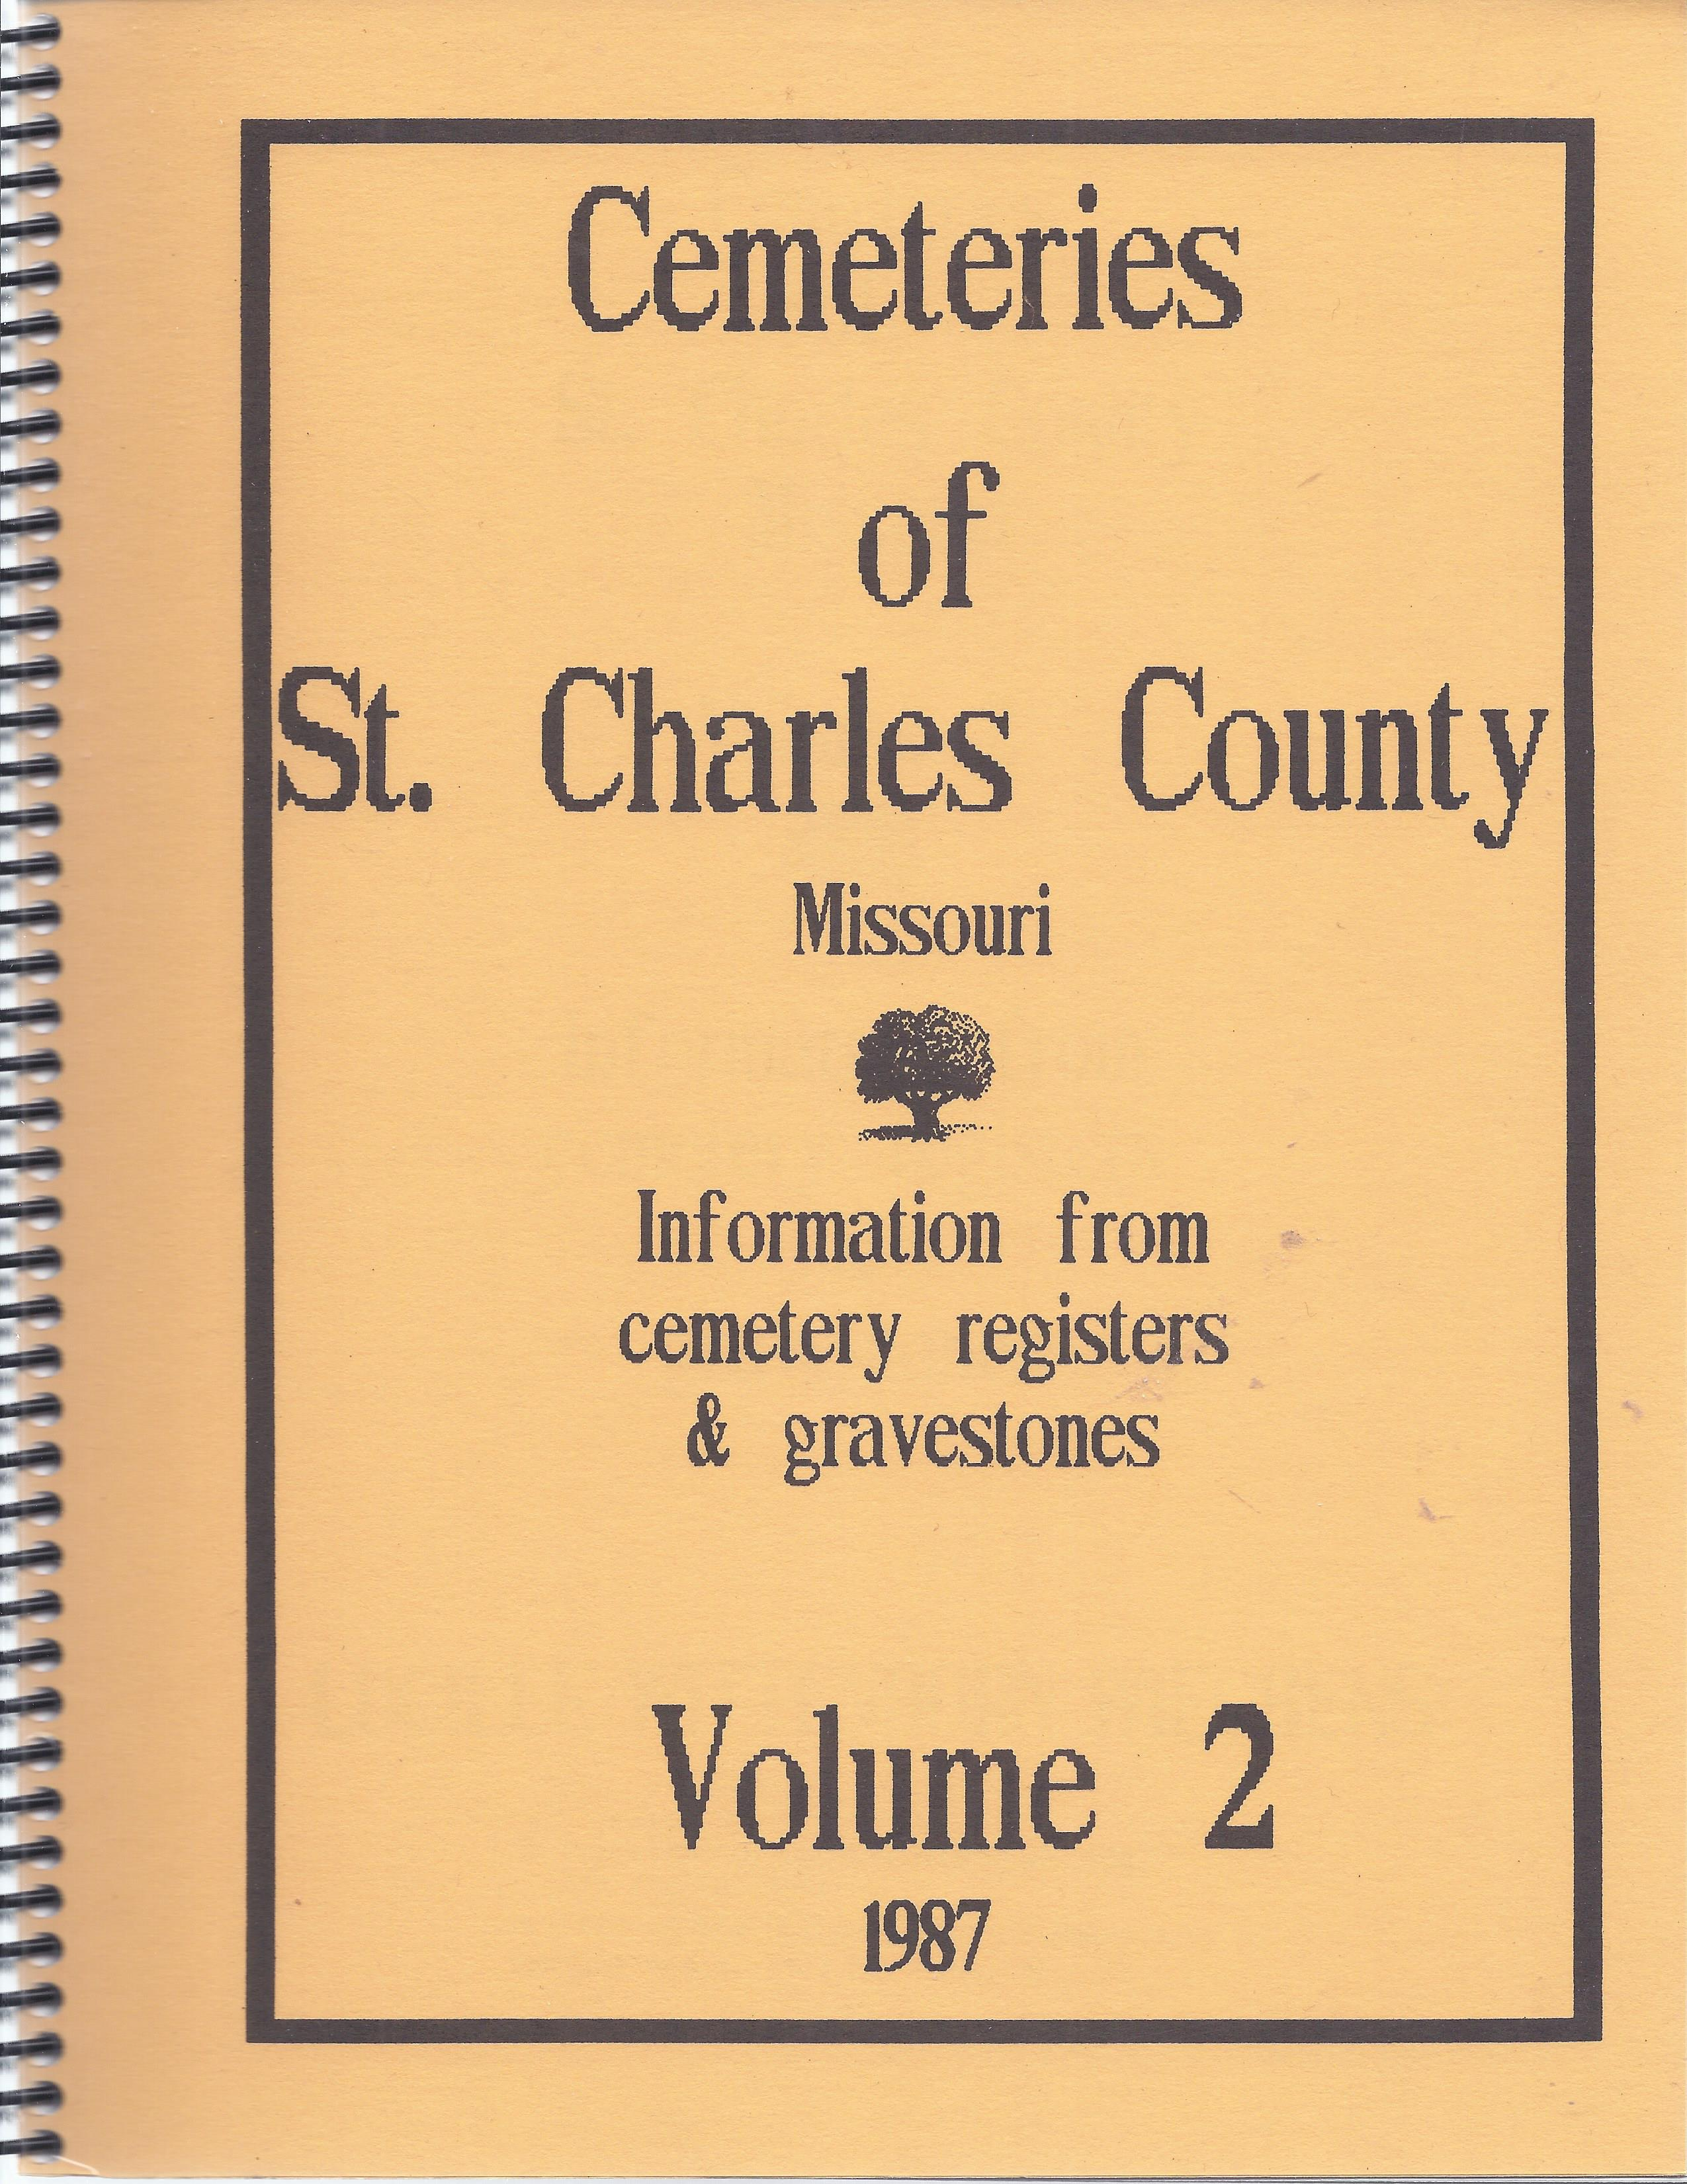 Cemeteries of St. Charles County, Vol. 2